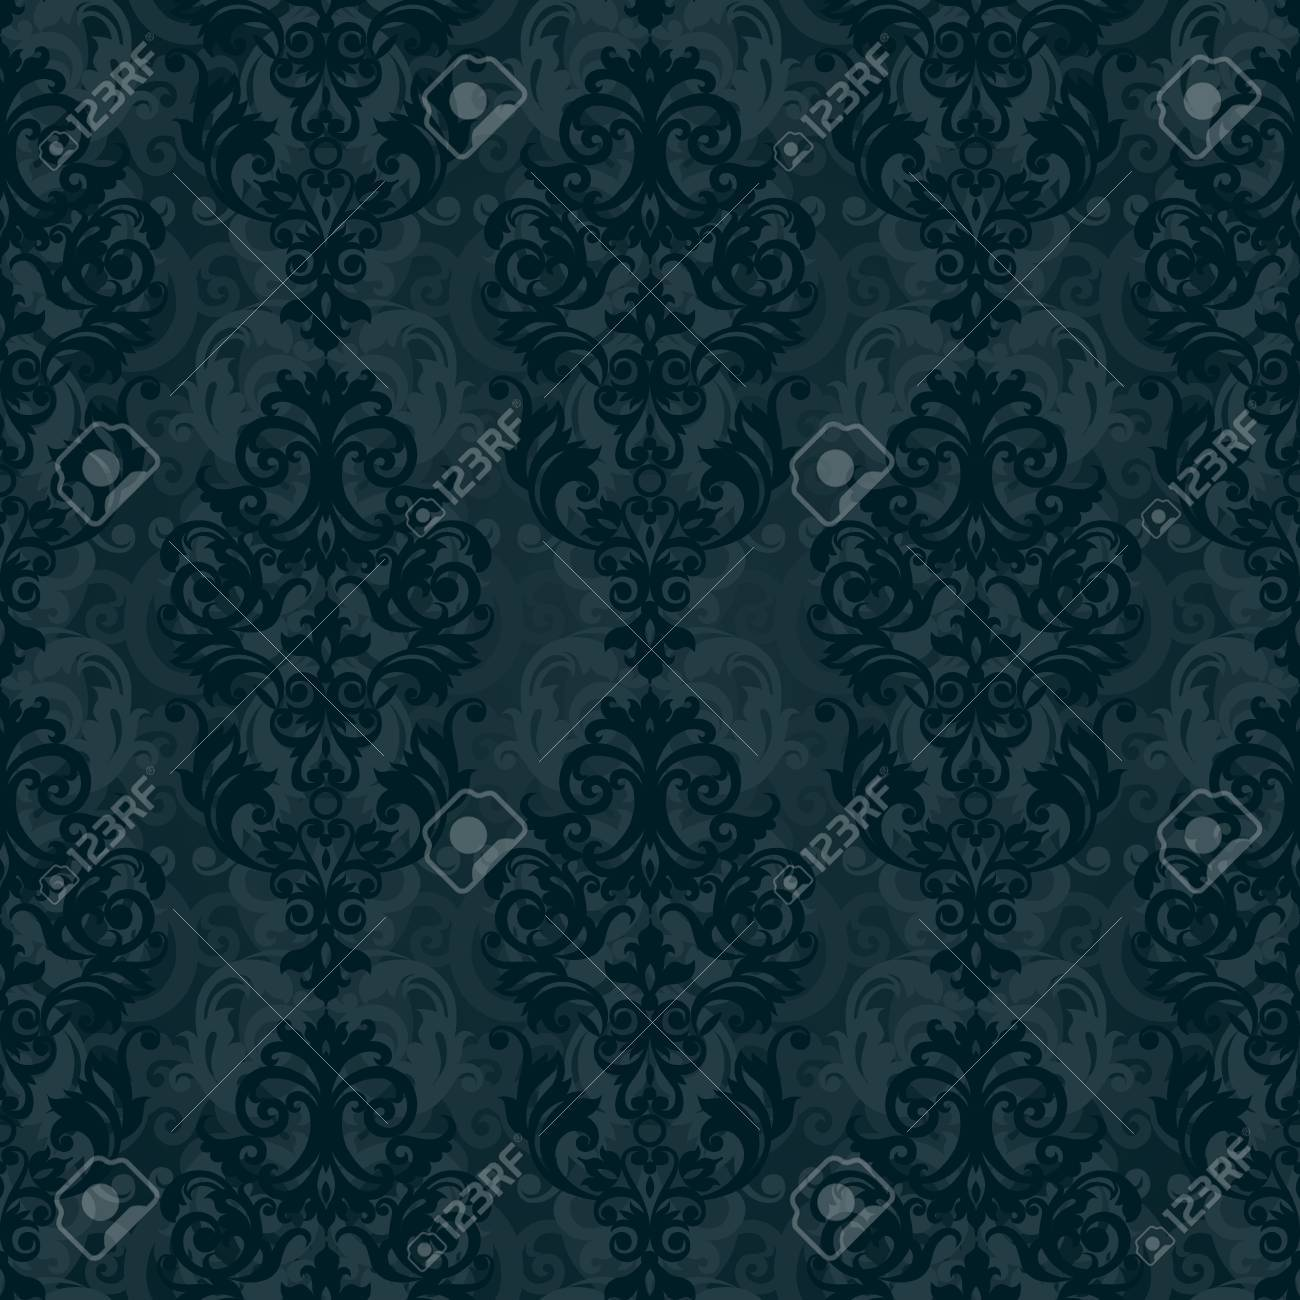 Vector Seamless Pattern With Swirls And Floral Motifs In Retro